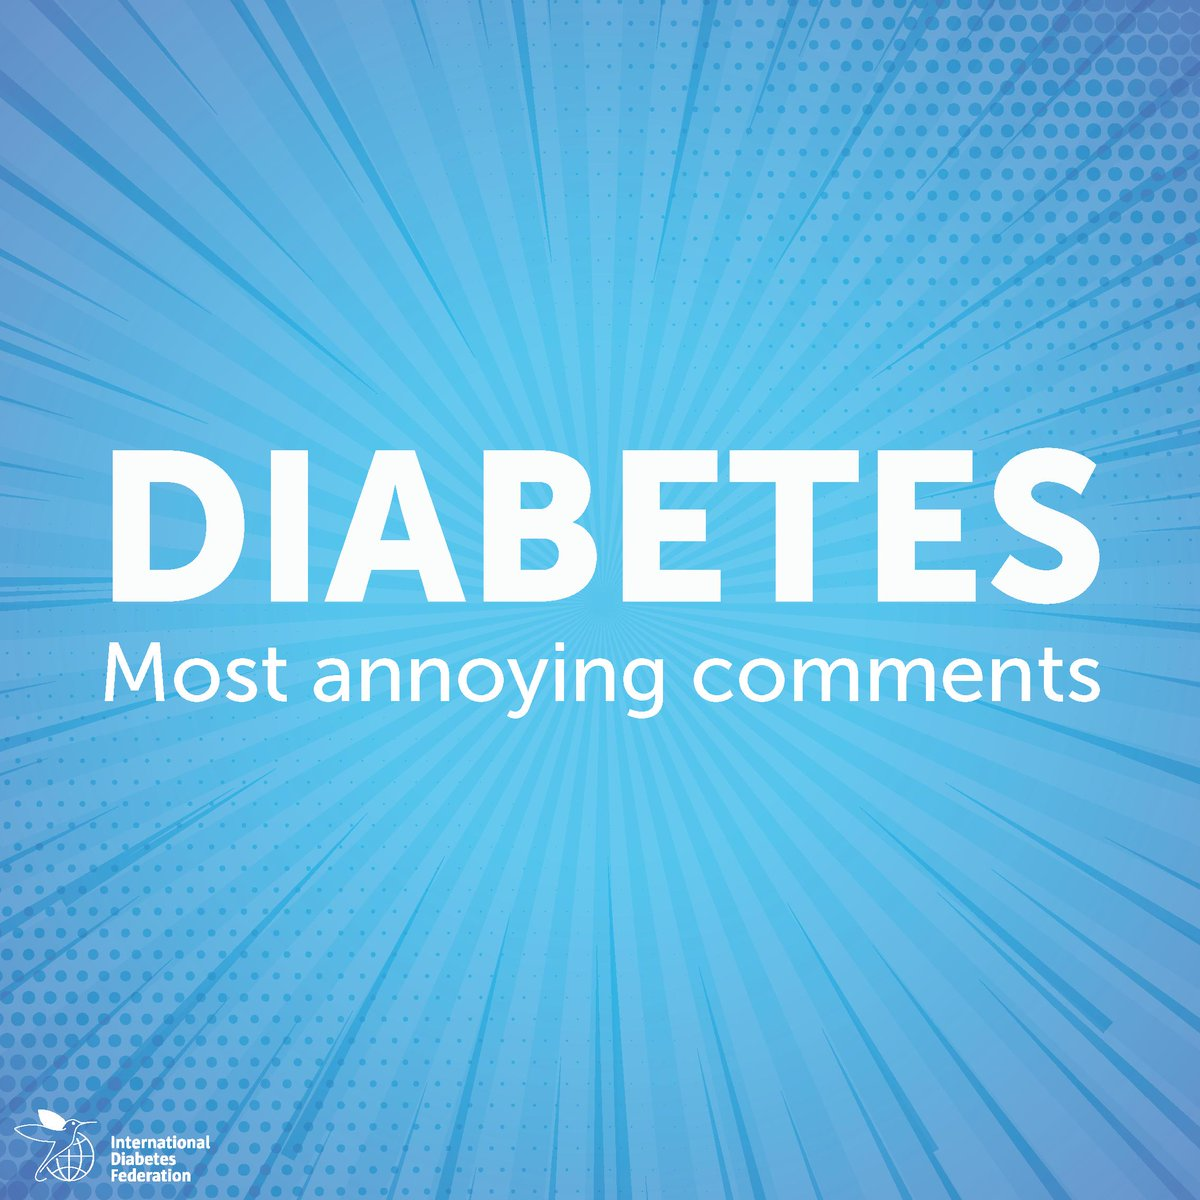 test Twitter Media - What comments that other people make when they learn you have #diabetes annoy you the most? Share them with us https://t.co/E0TifkFkme